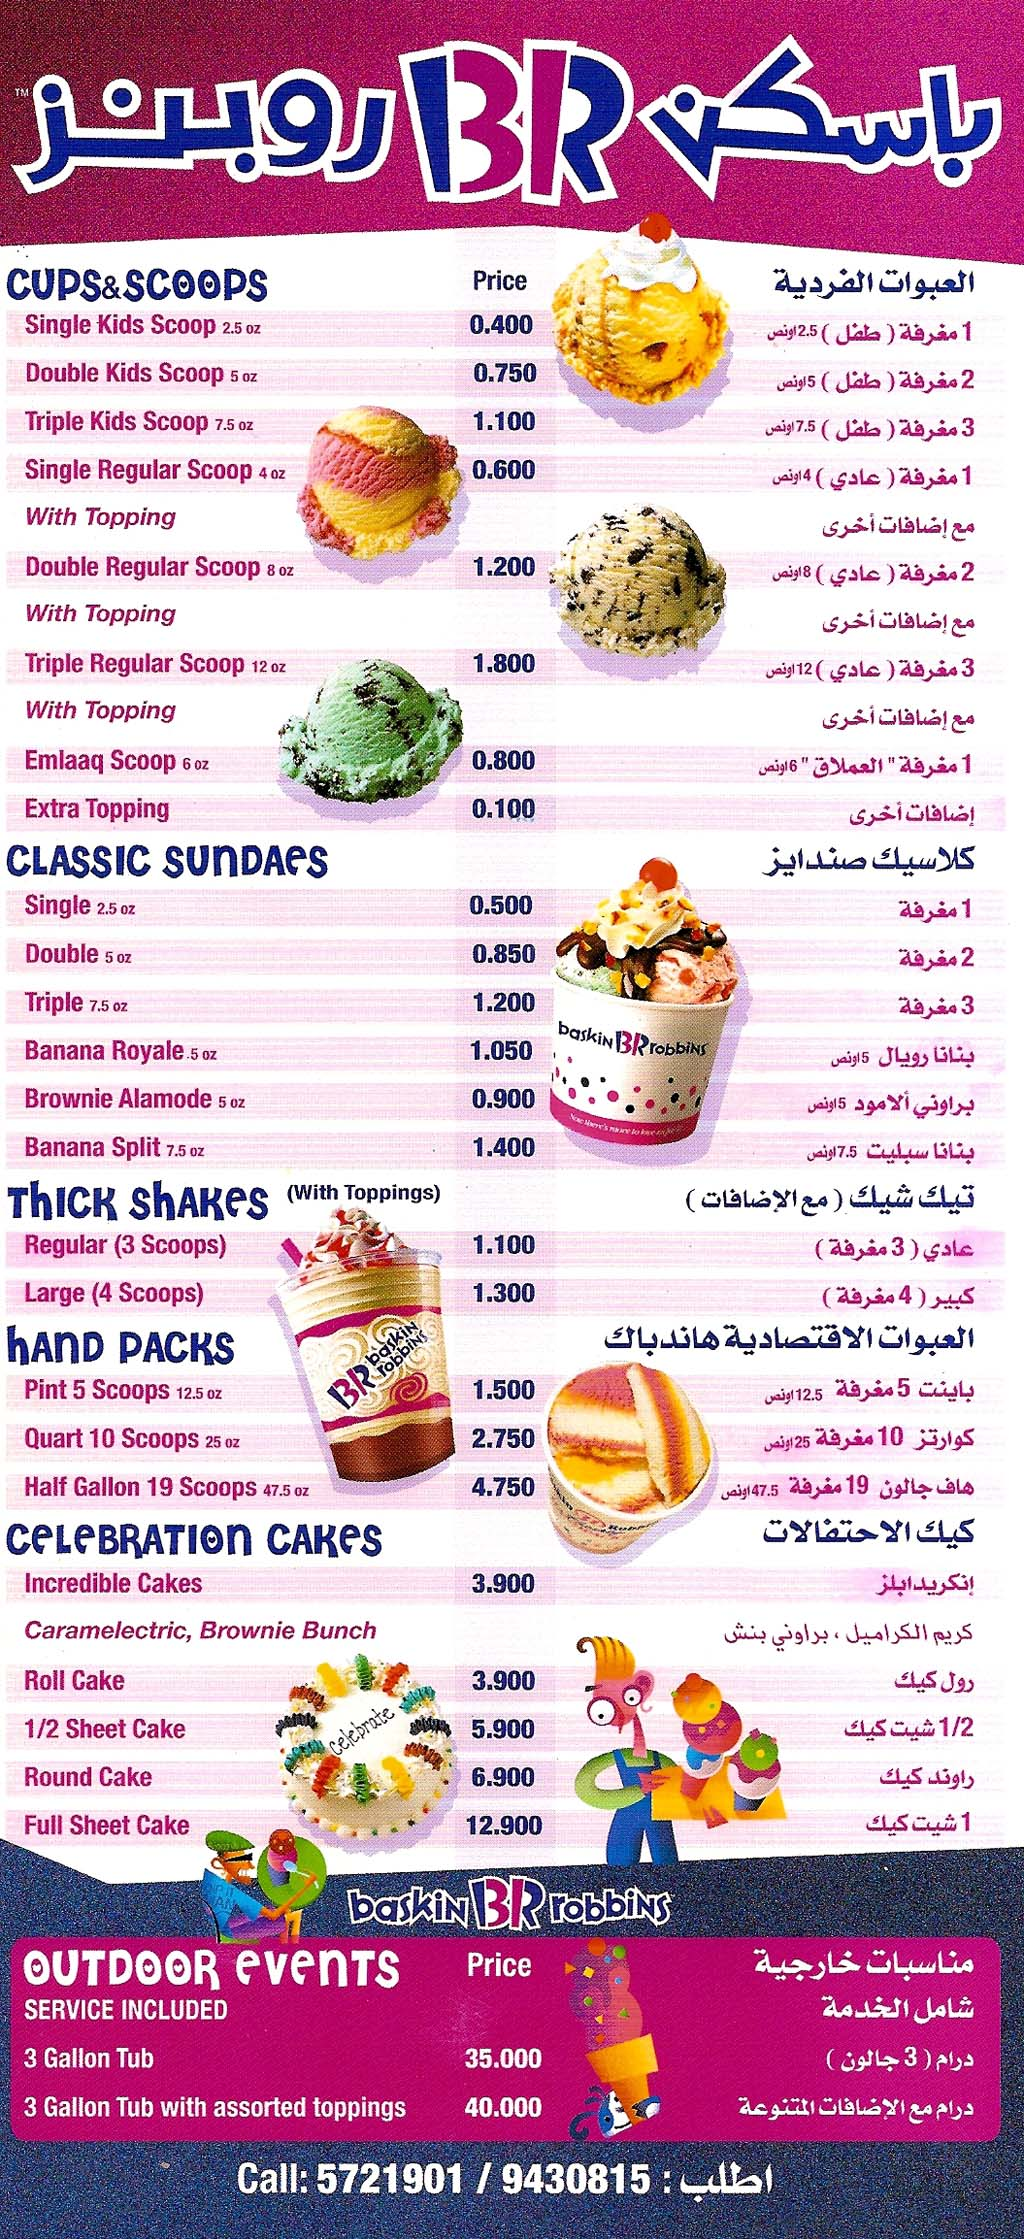 Menu (including prices) for Baskin Robbins may have changed since the last time the website was updated. selectcarapp.ml does not guarantee prices or the availability of menu items at Baskin Robbins.